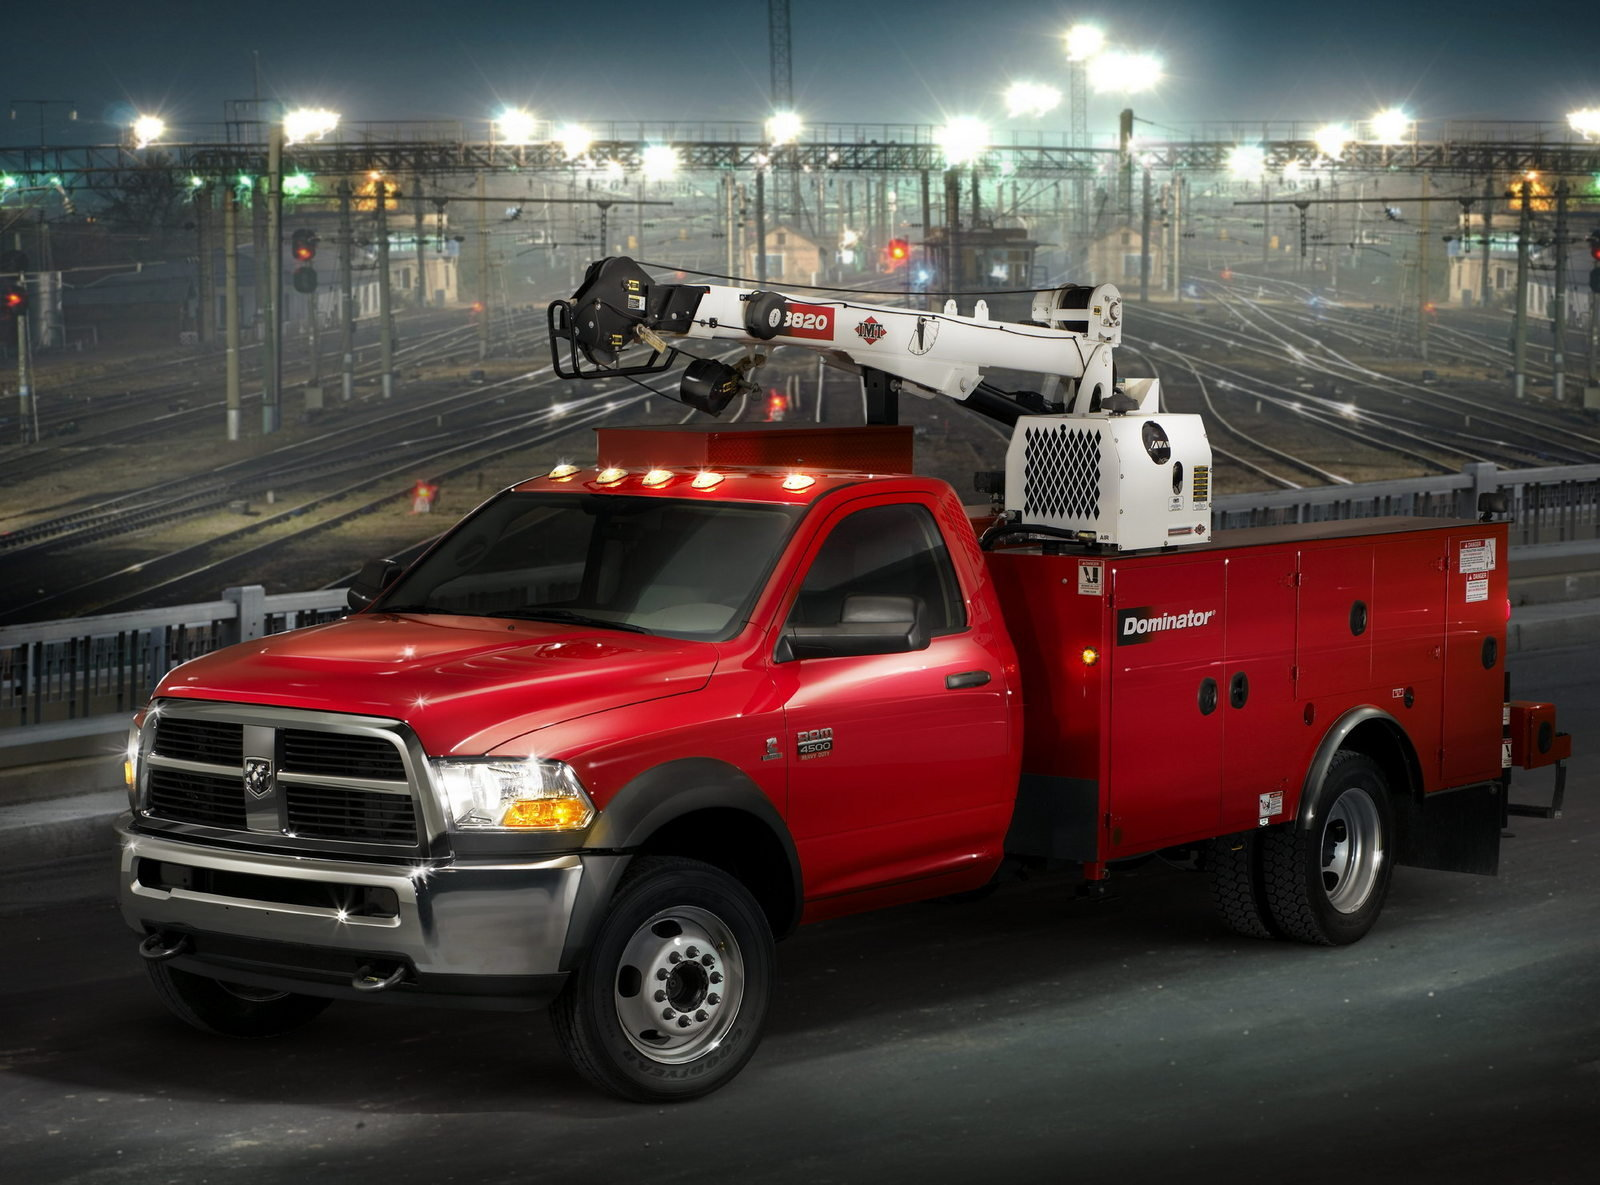 2011 Dodge Ram 4500 St Chassis Cab Review Top Speed